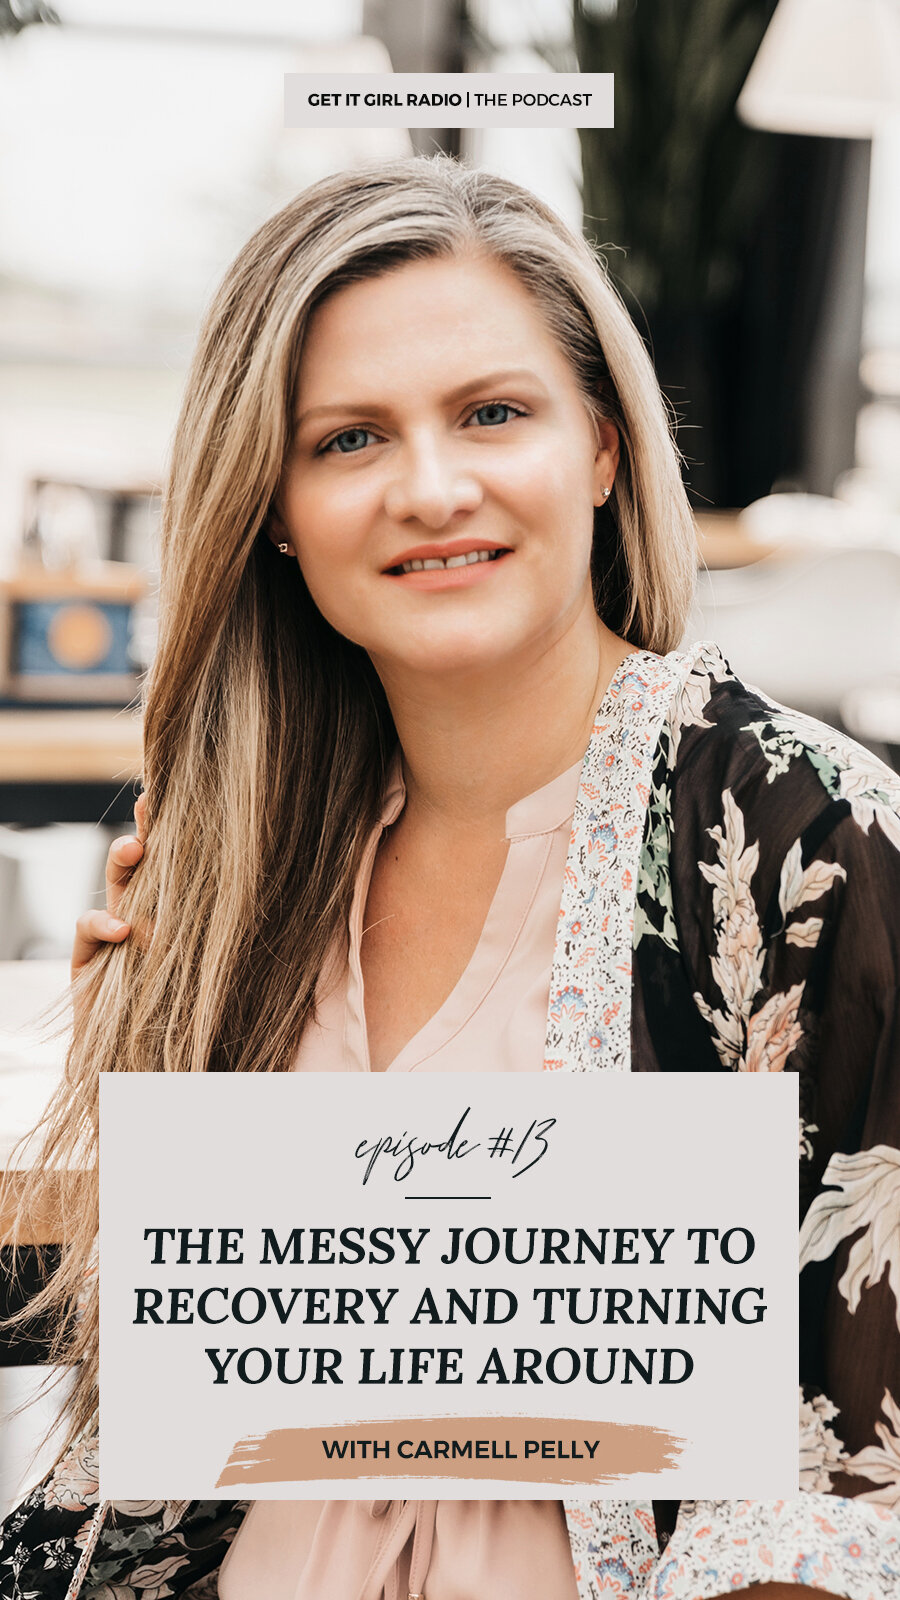 Ep. 13 | The Messy Journey To Recovery and Turning Your Life Around with Carmell Pelly | The Get It Girl Radio Podcast with Nicole Constante